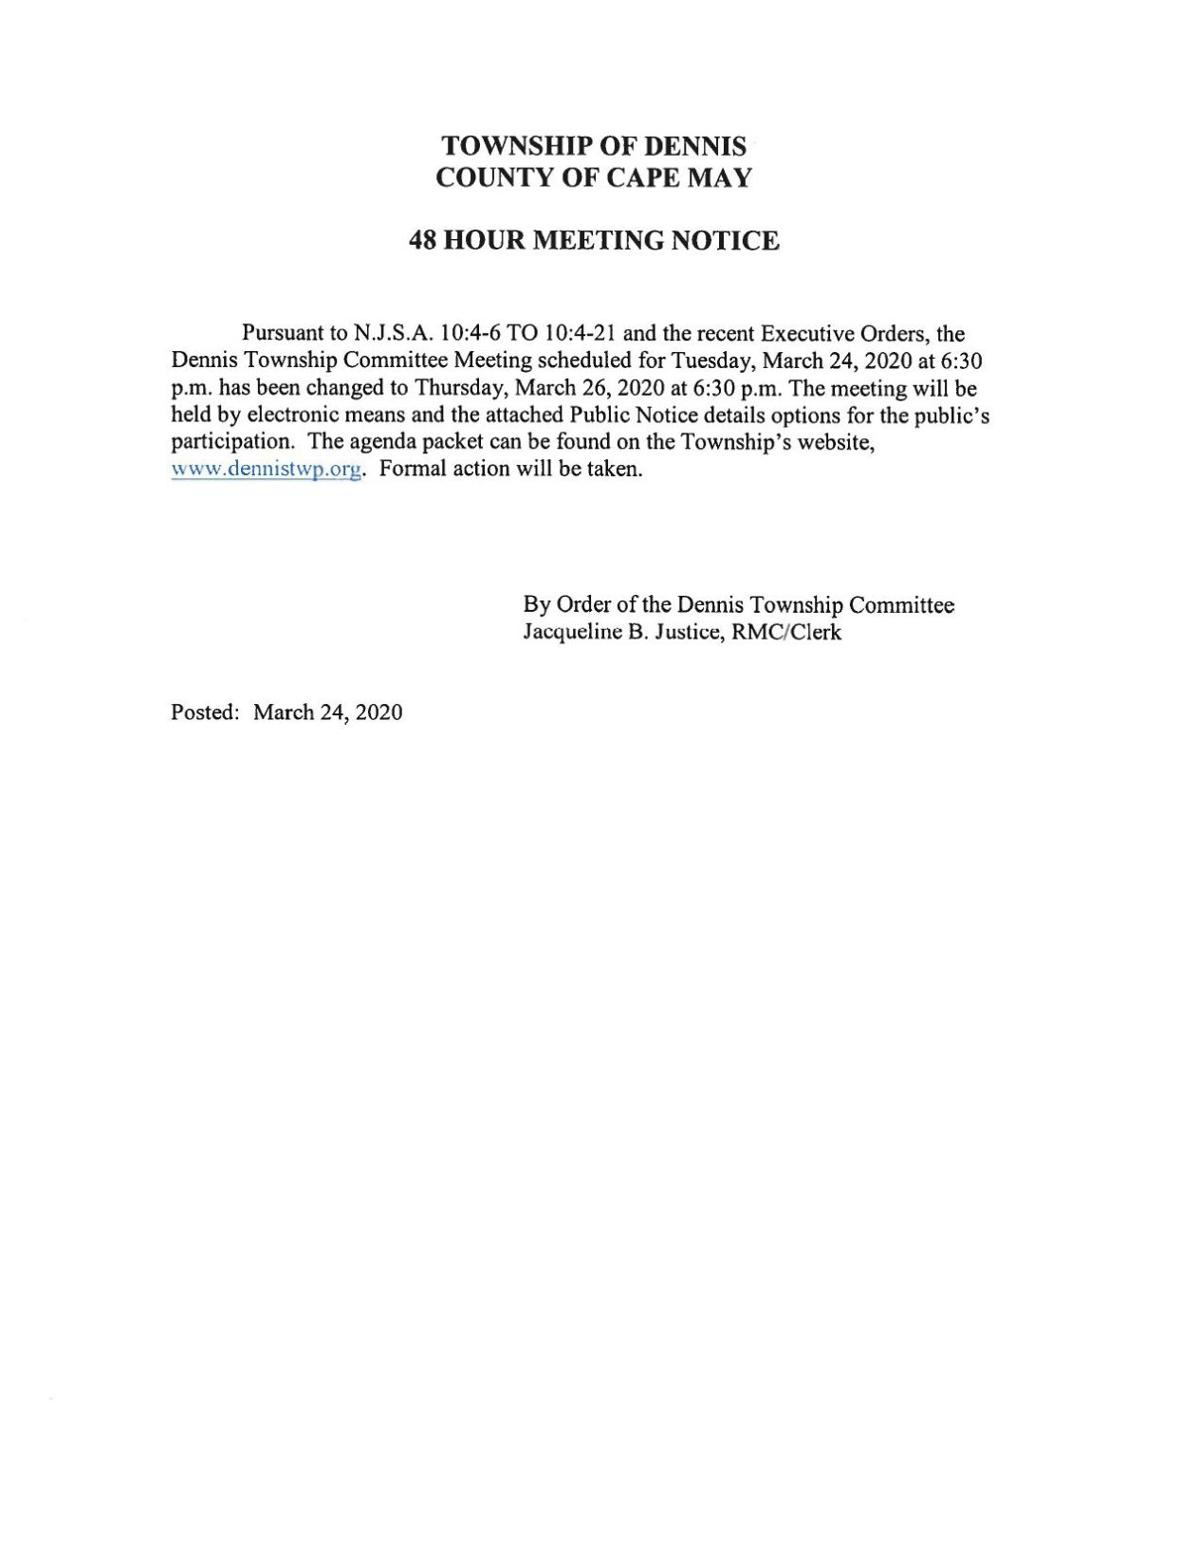 Dennis Township Reschedules March 24 Meeting